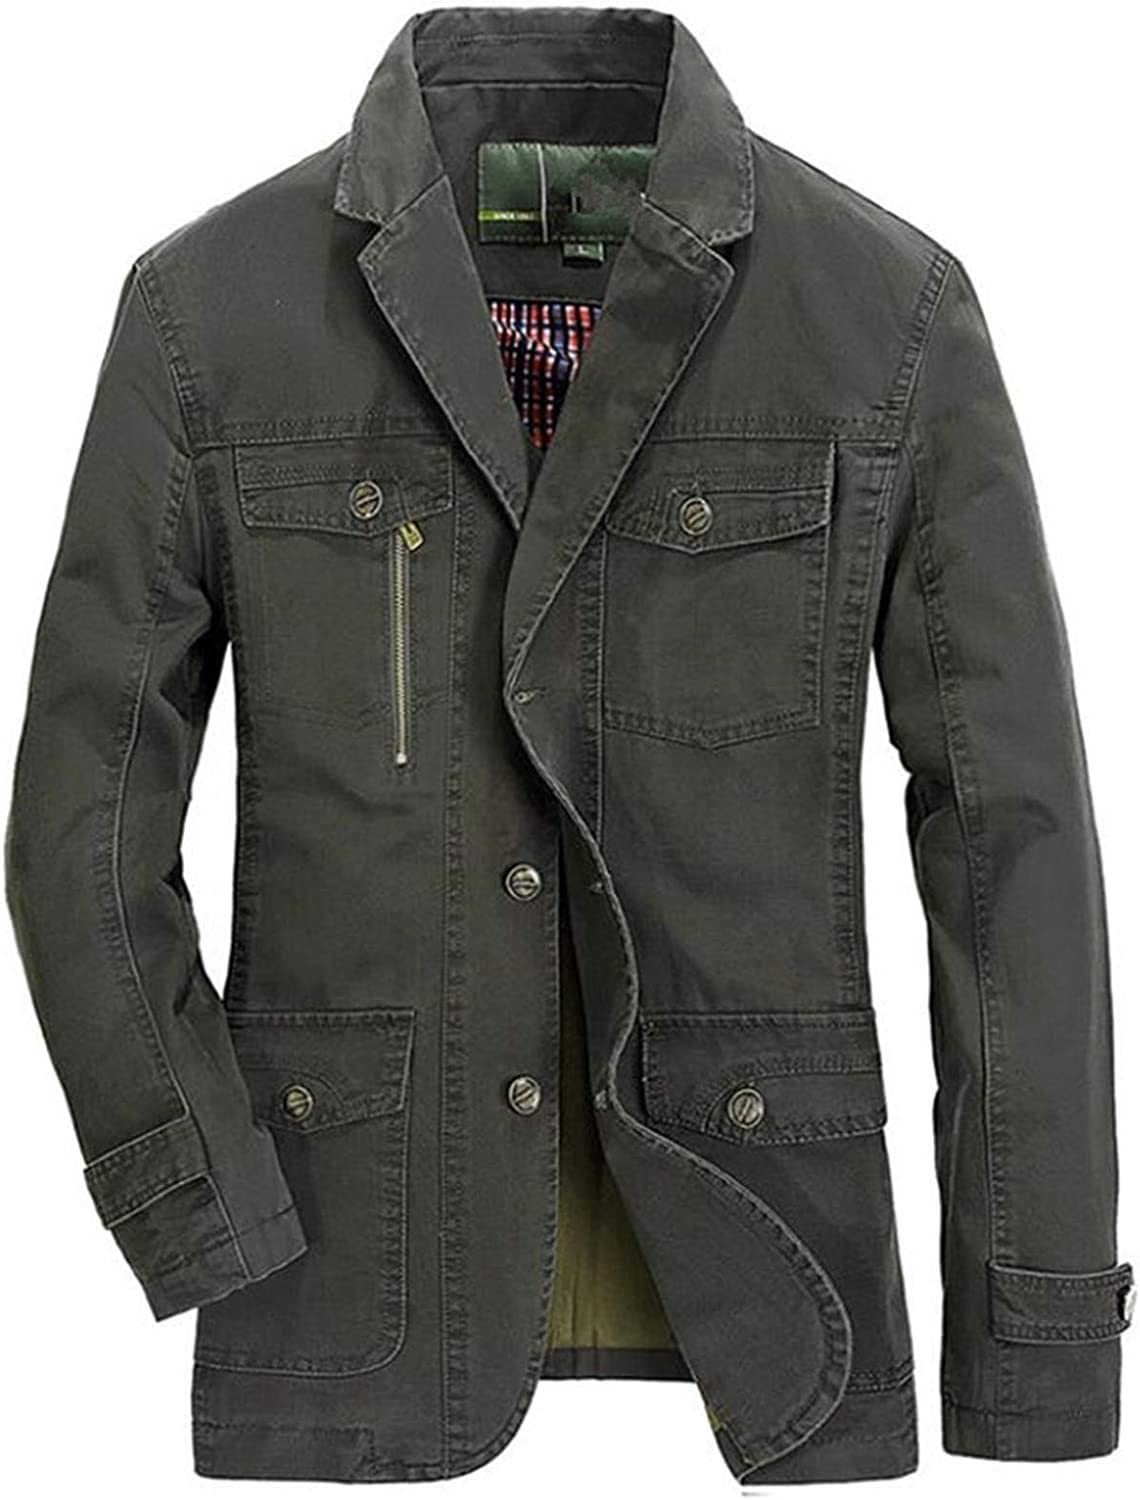 All stores are sold Spring specialty shop Autumn Military Blazer Jacket Washed Coats Arm Casual Men